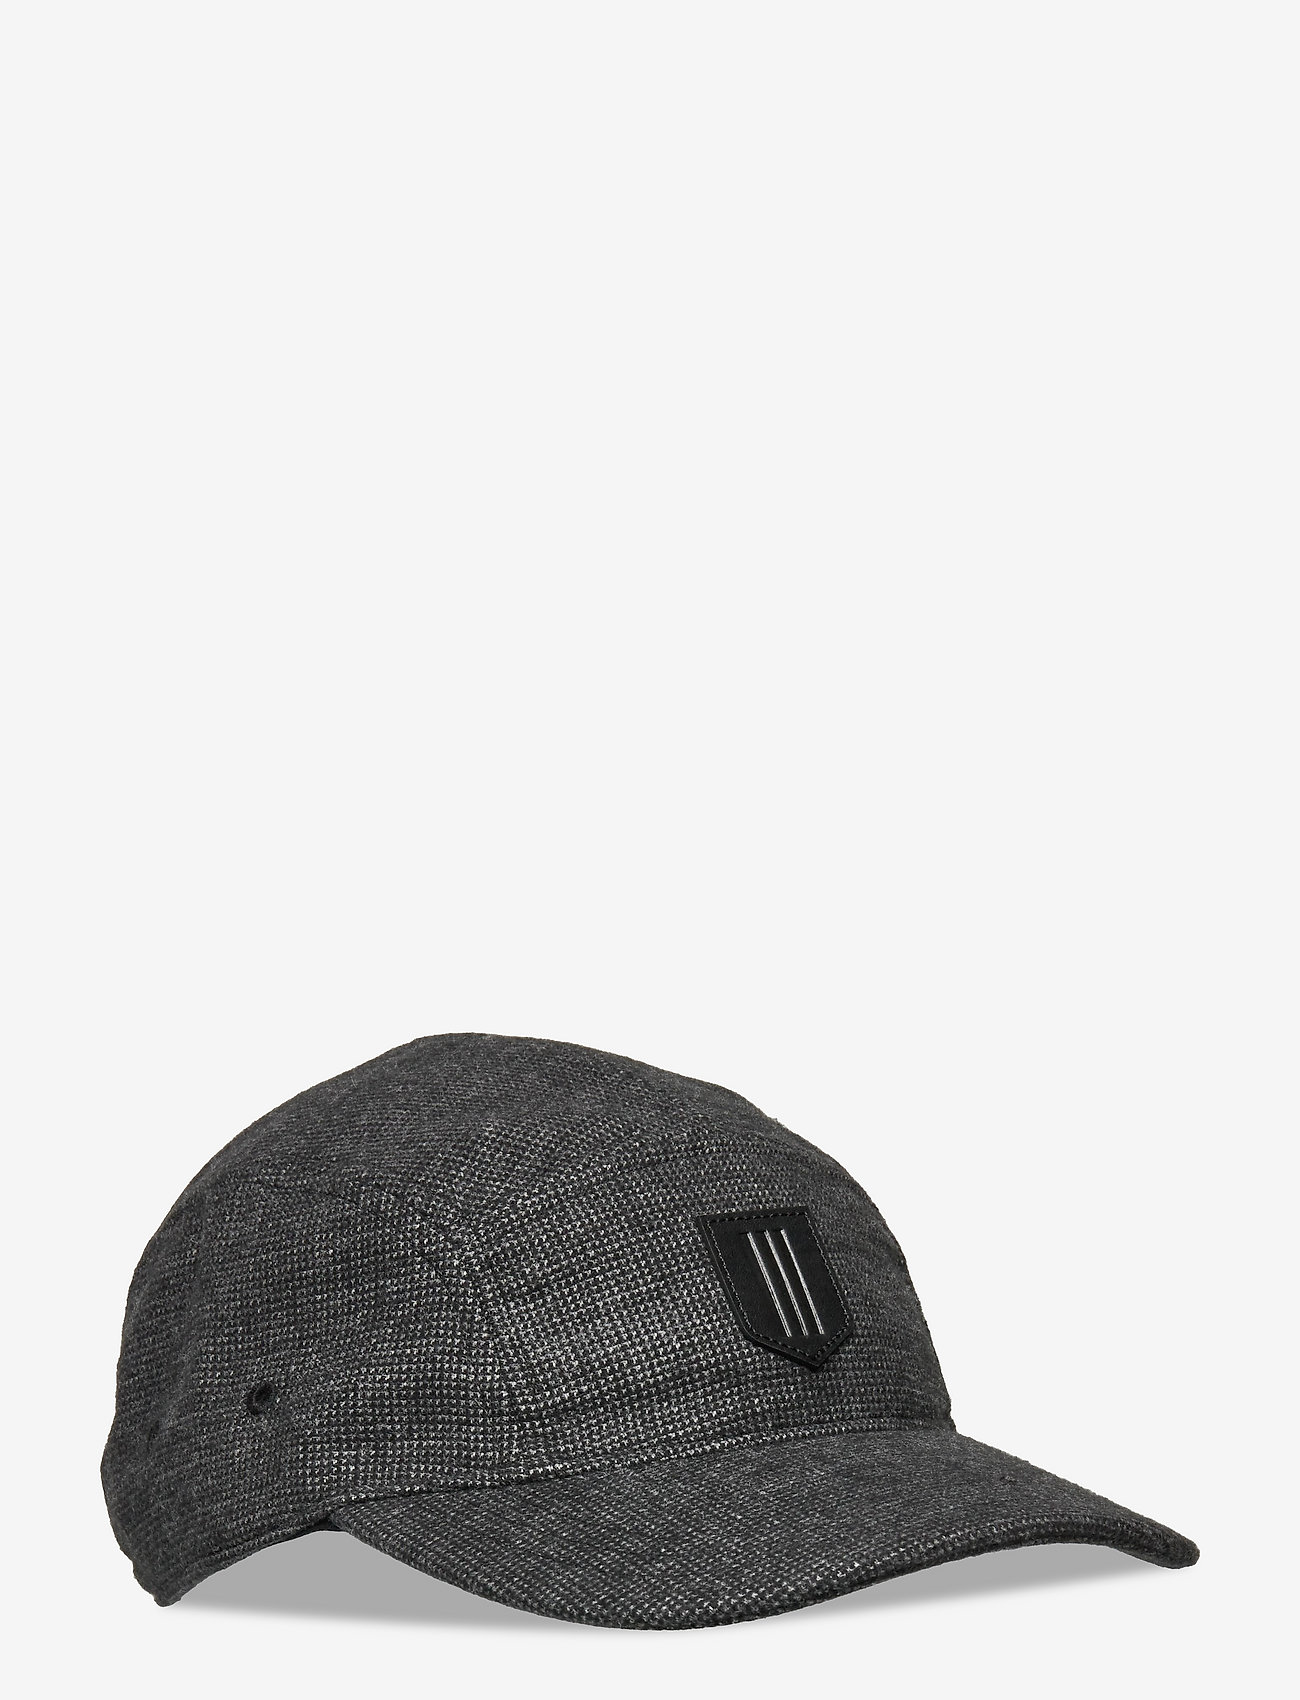 adidas Golf - KILTED HAT - casquettes - black - 0